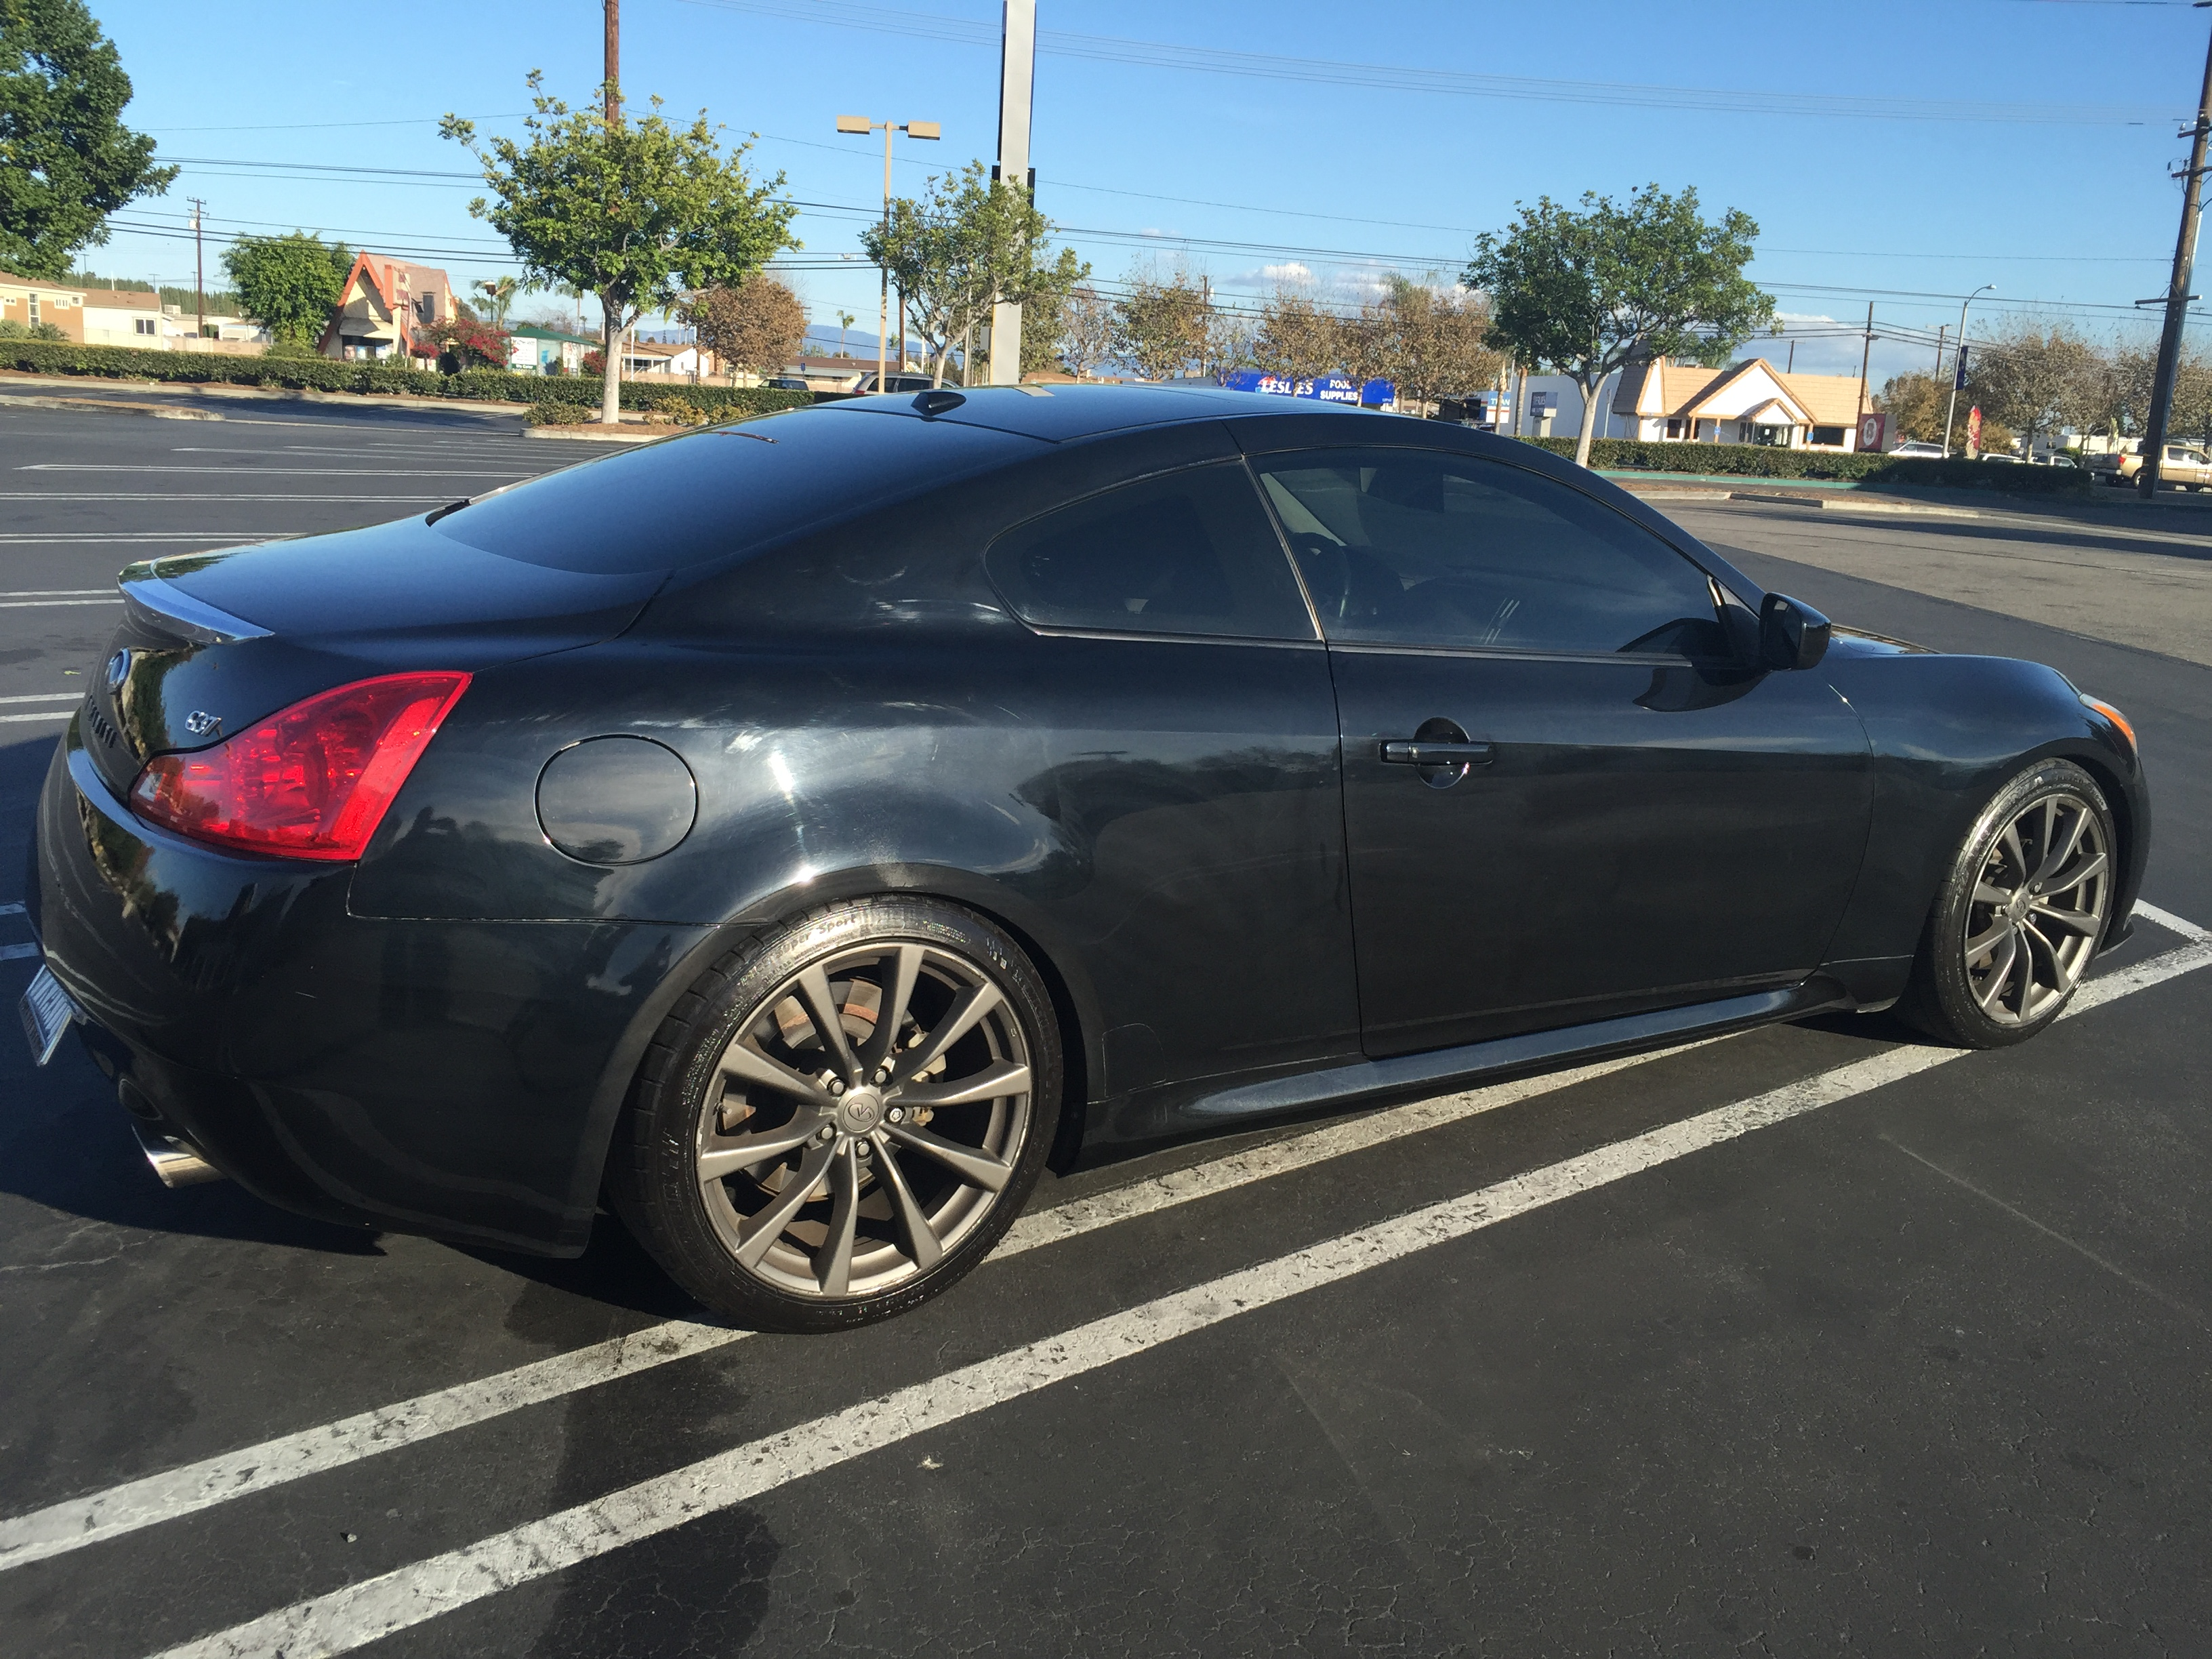 Used Coupes for Sale Beautiful for Sale 2008 G37 Coupe Myg37